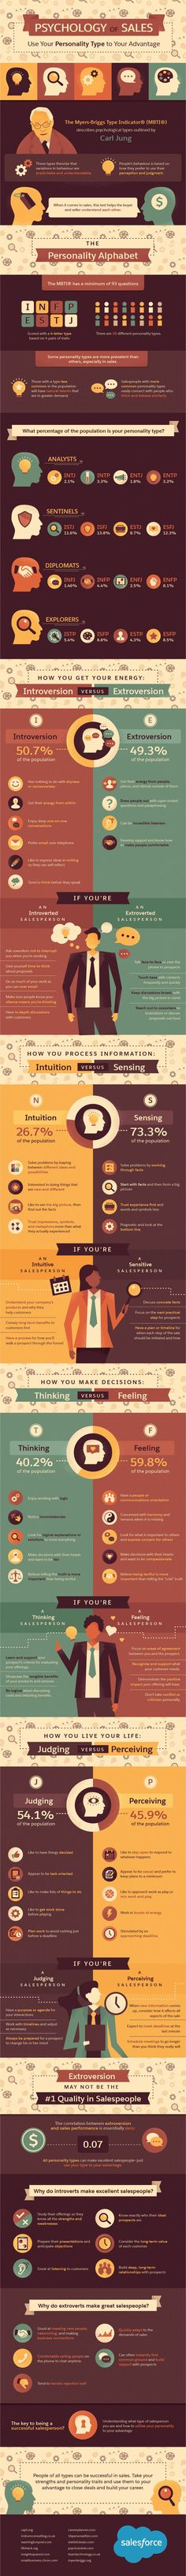 Psychology of Sales: Use Your Personality Type to Your Advantage #Infographic